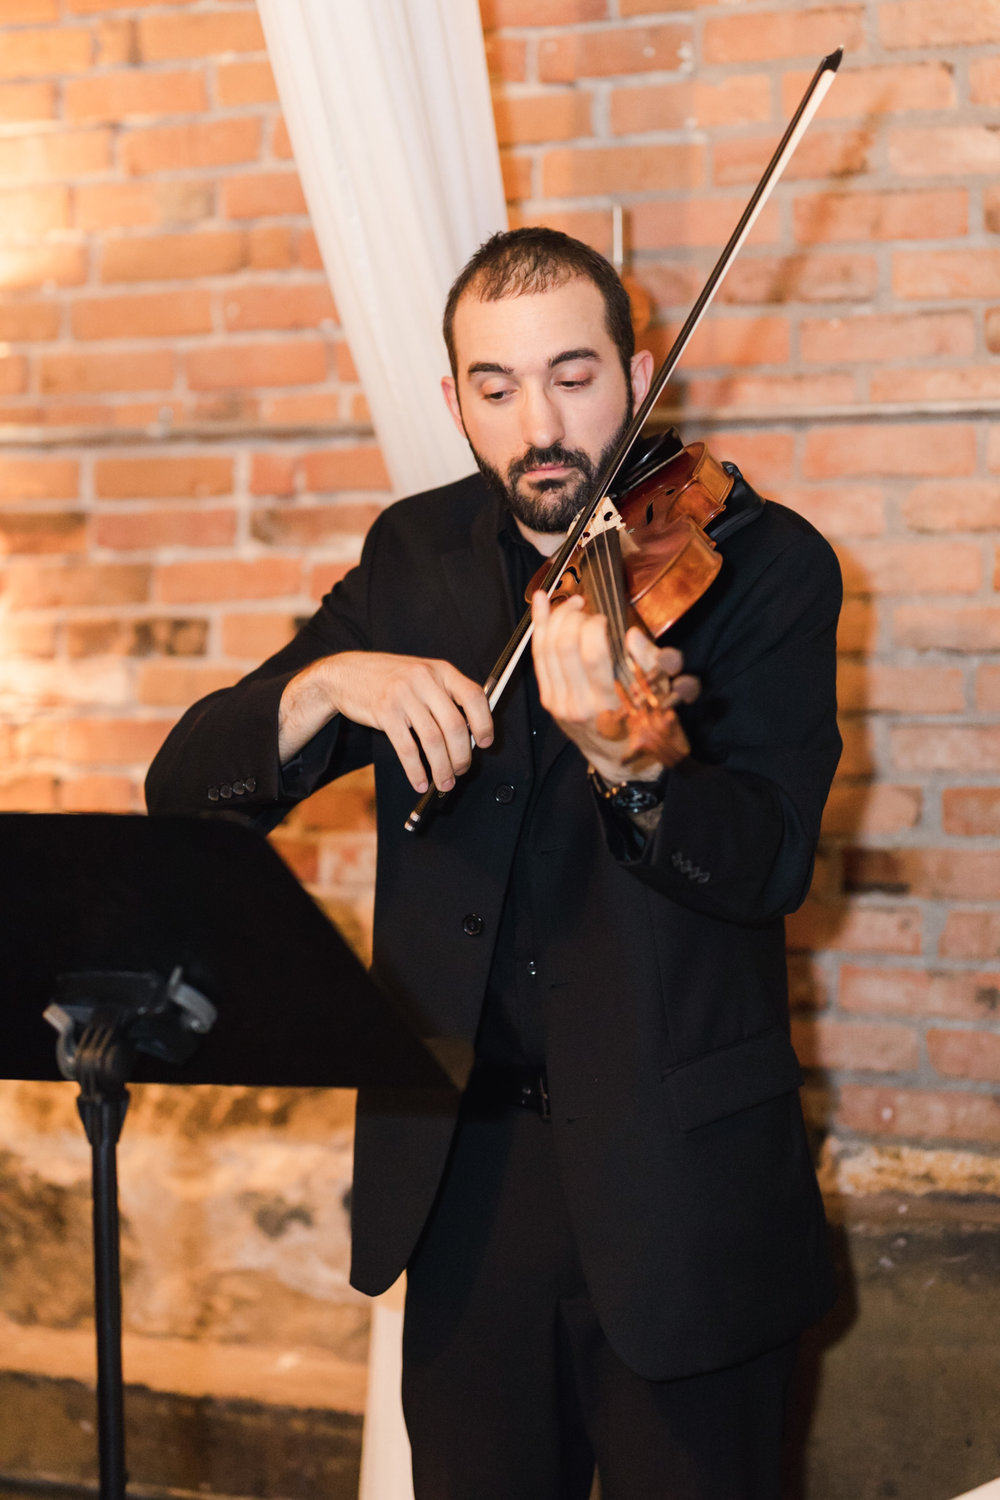 Solo violinist Daniel Winnick performs prelude music for wedding ceremony. Captured by  Stephanie Kaslly Photography.